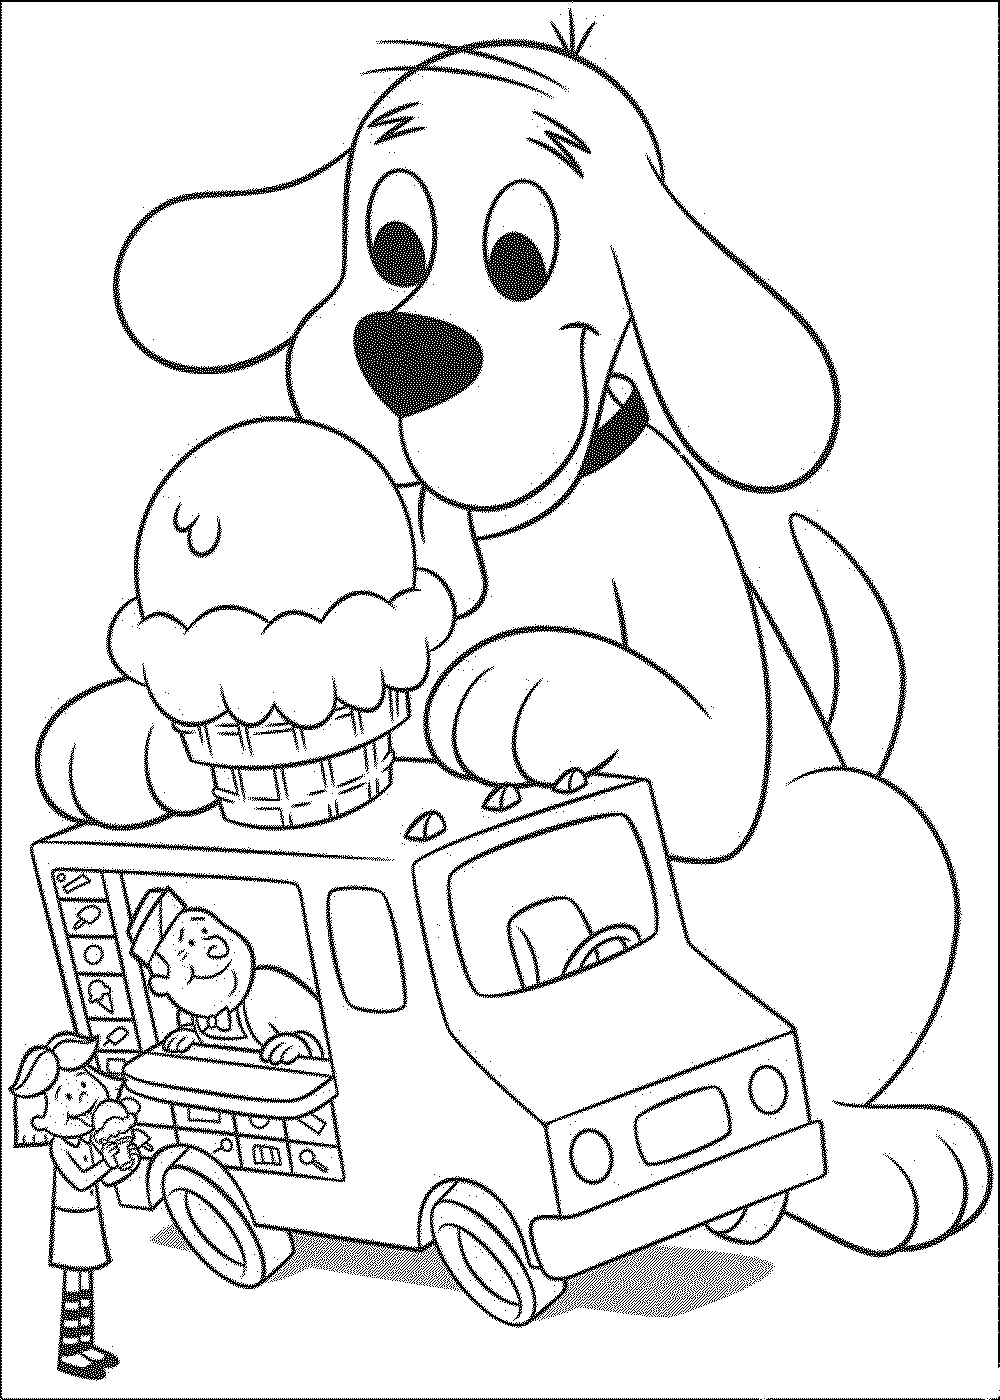 dogs pictures to color 9 puppy coloring pages jpg ai illustrator download to dogs color pictures